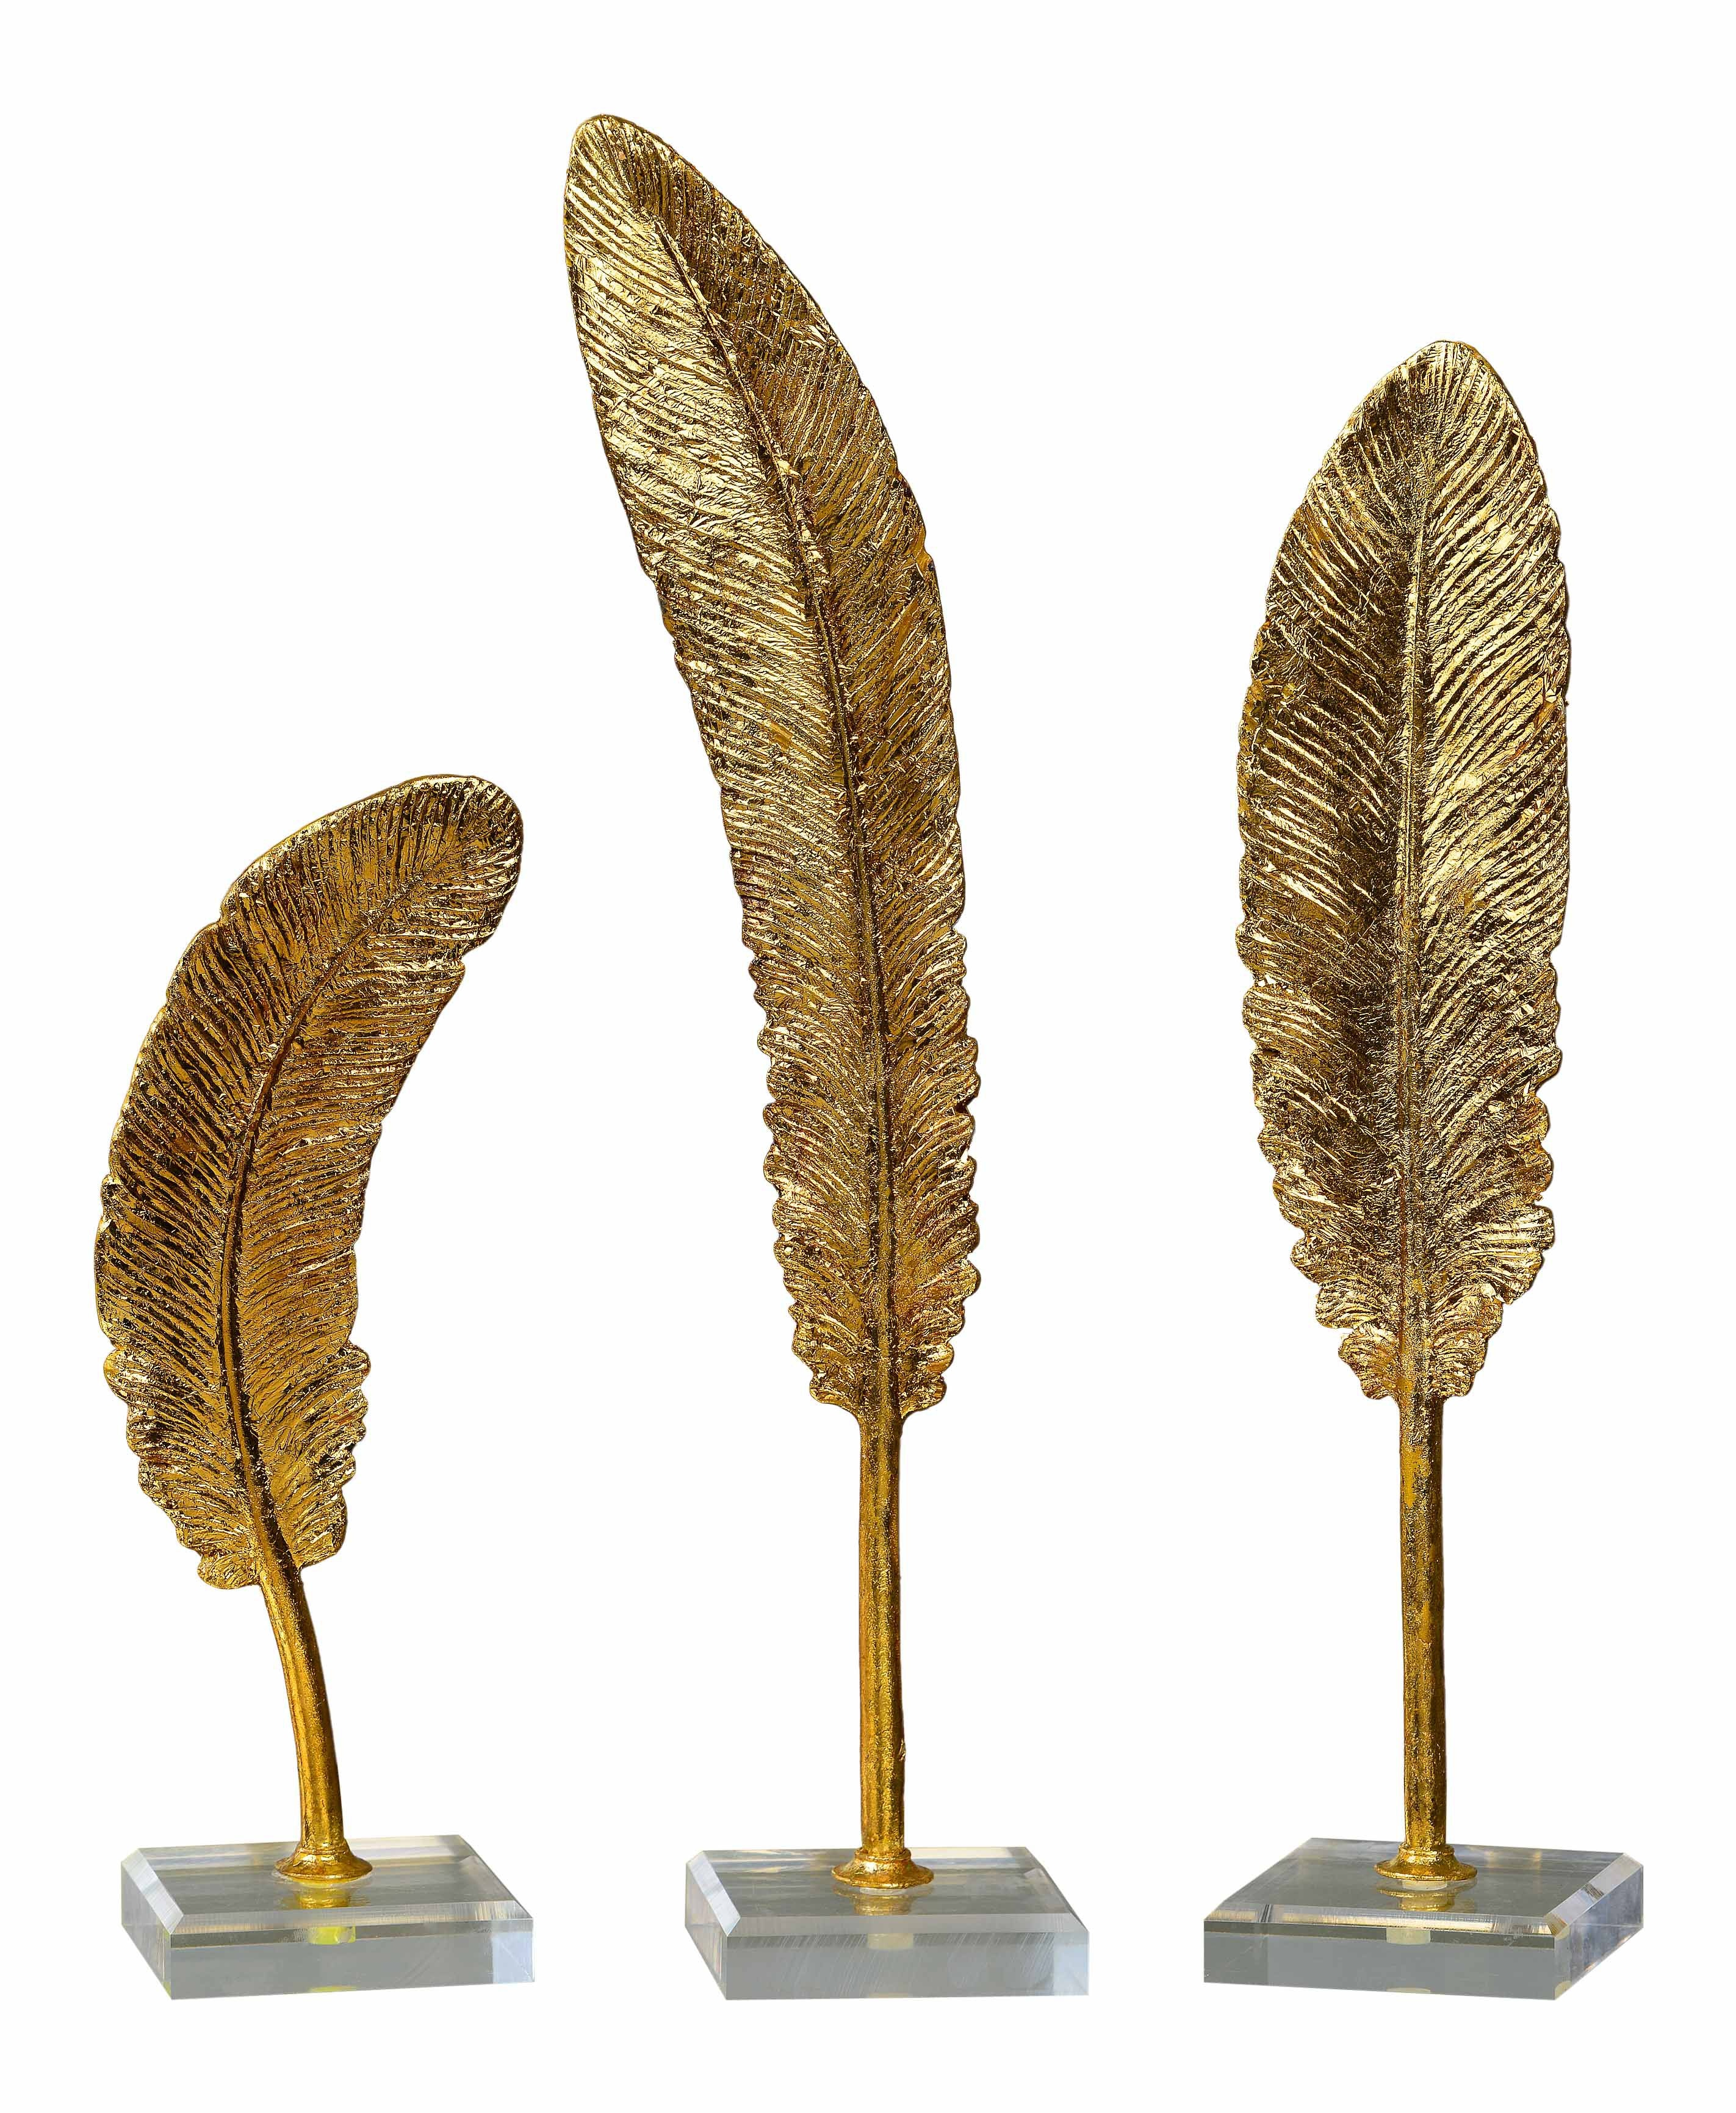 Uttermost Feathers Gold Sculpture S/3 20079